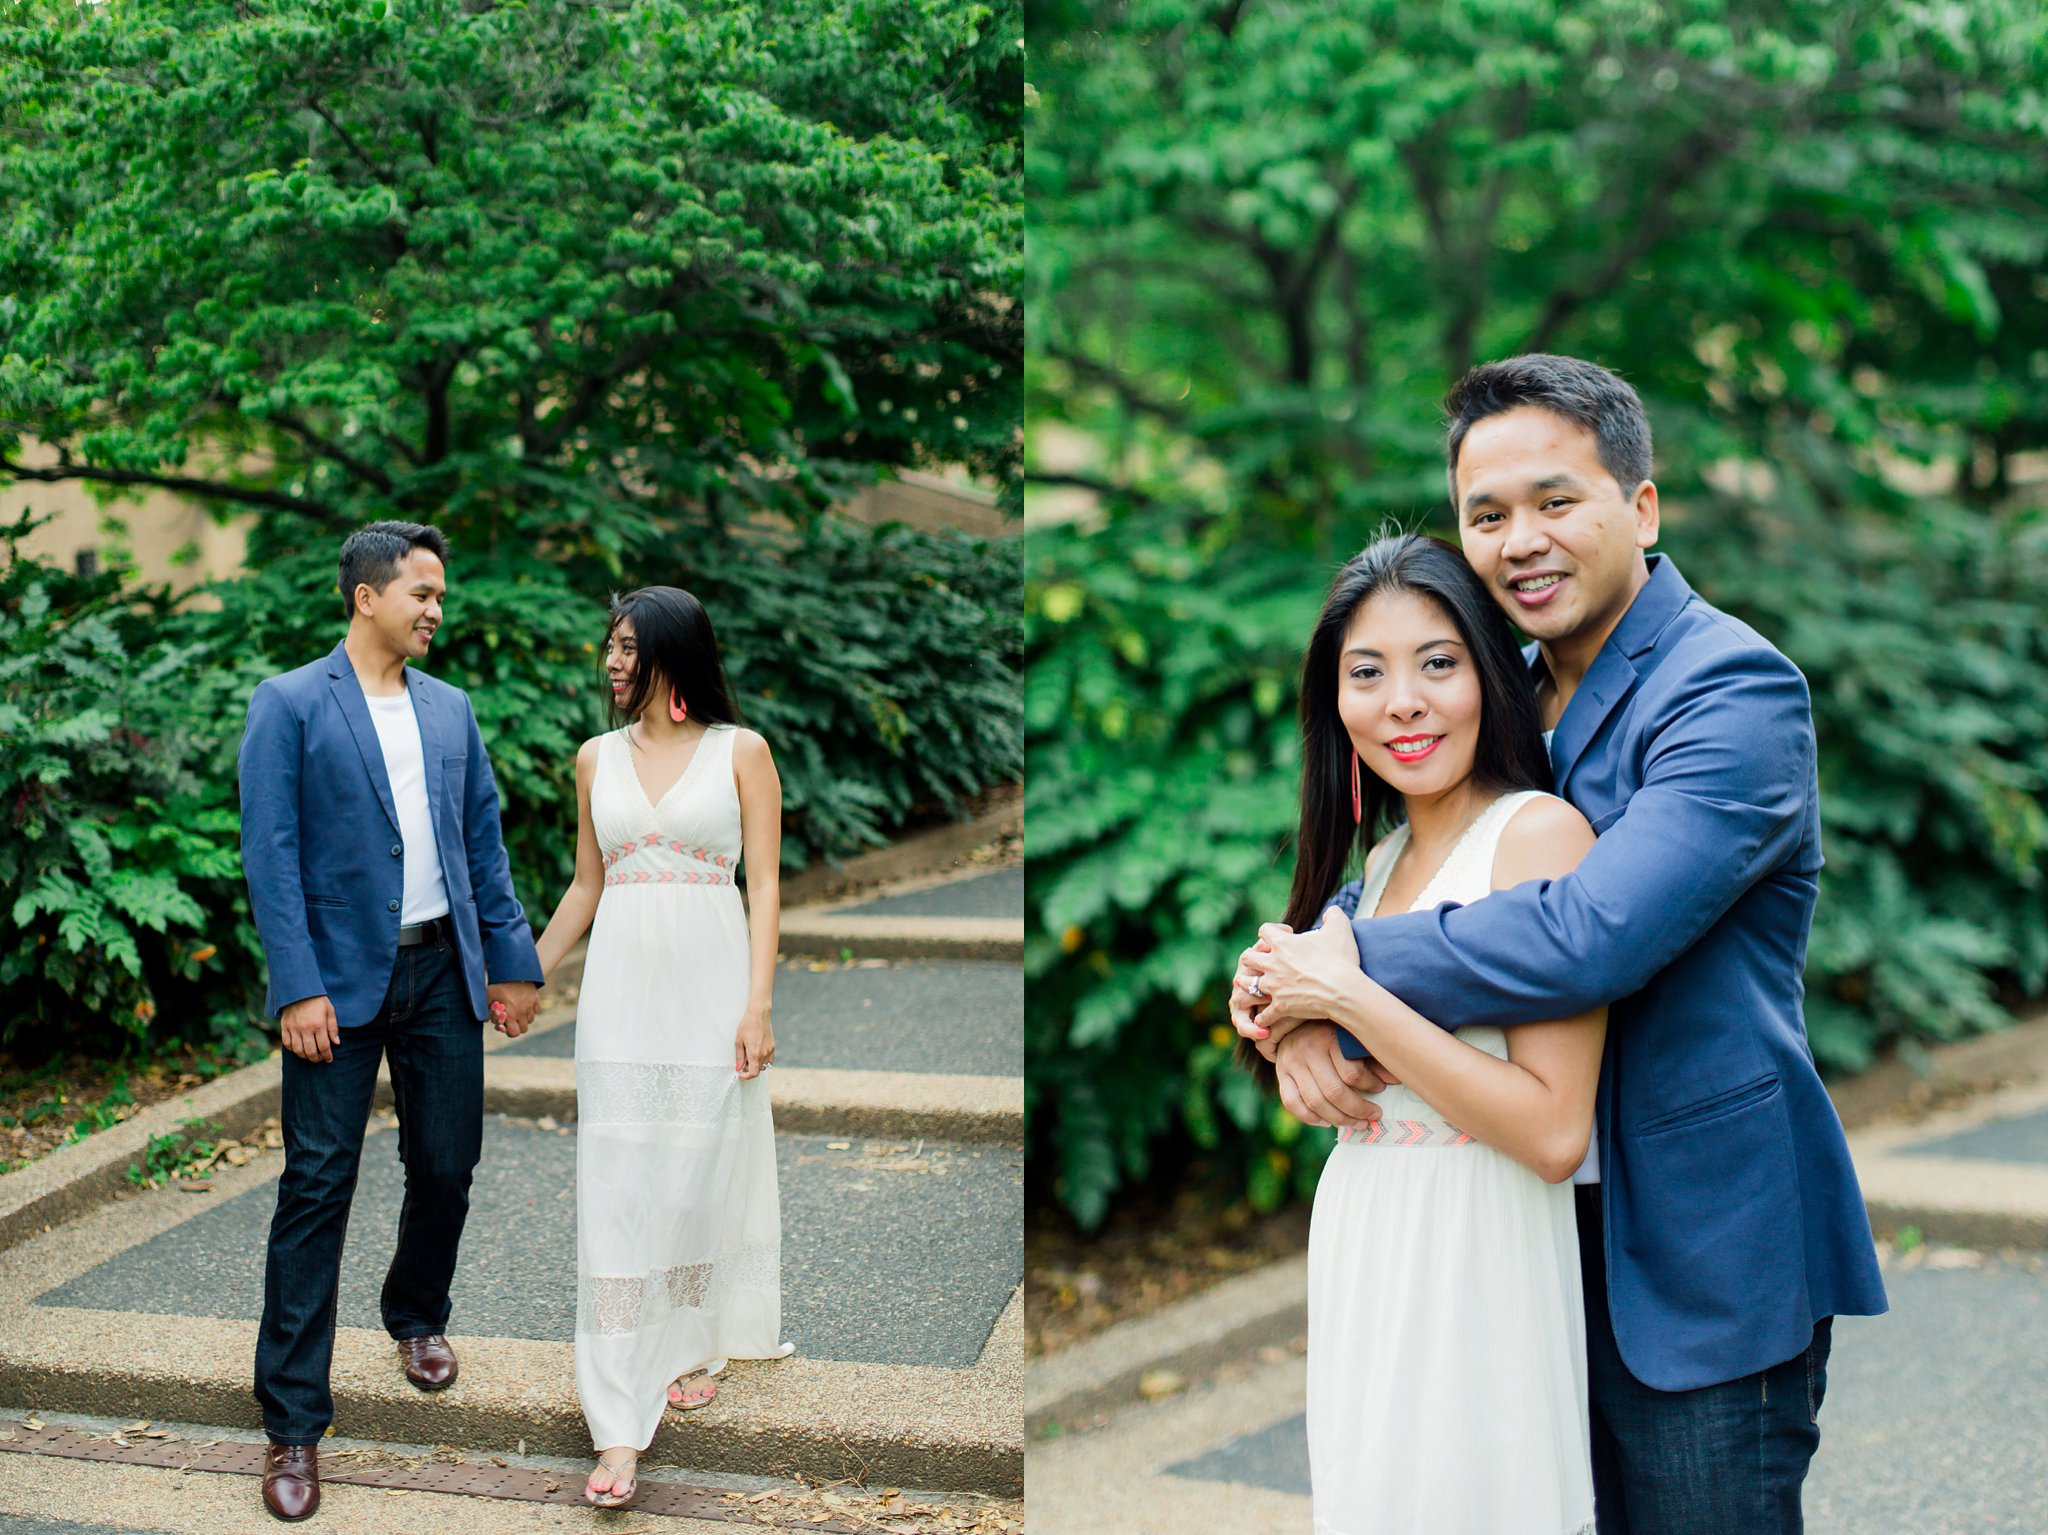 Thin & Phil Meridian Hill Park DC Engagement Photos-173.jpg